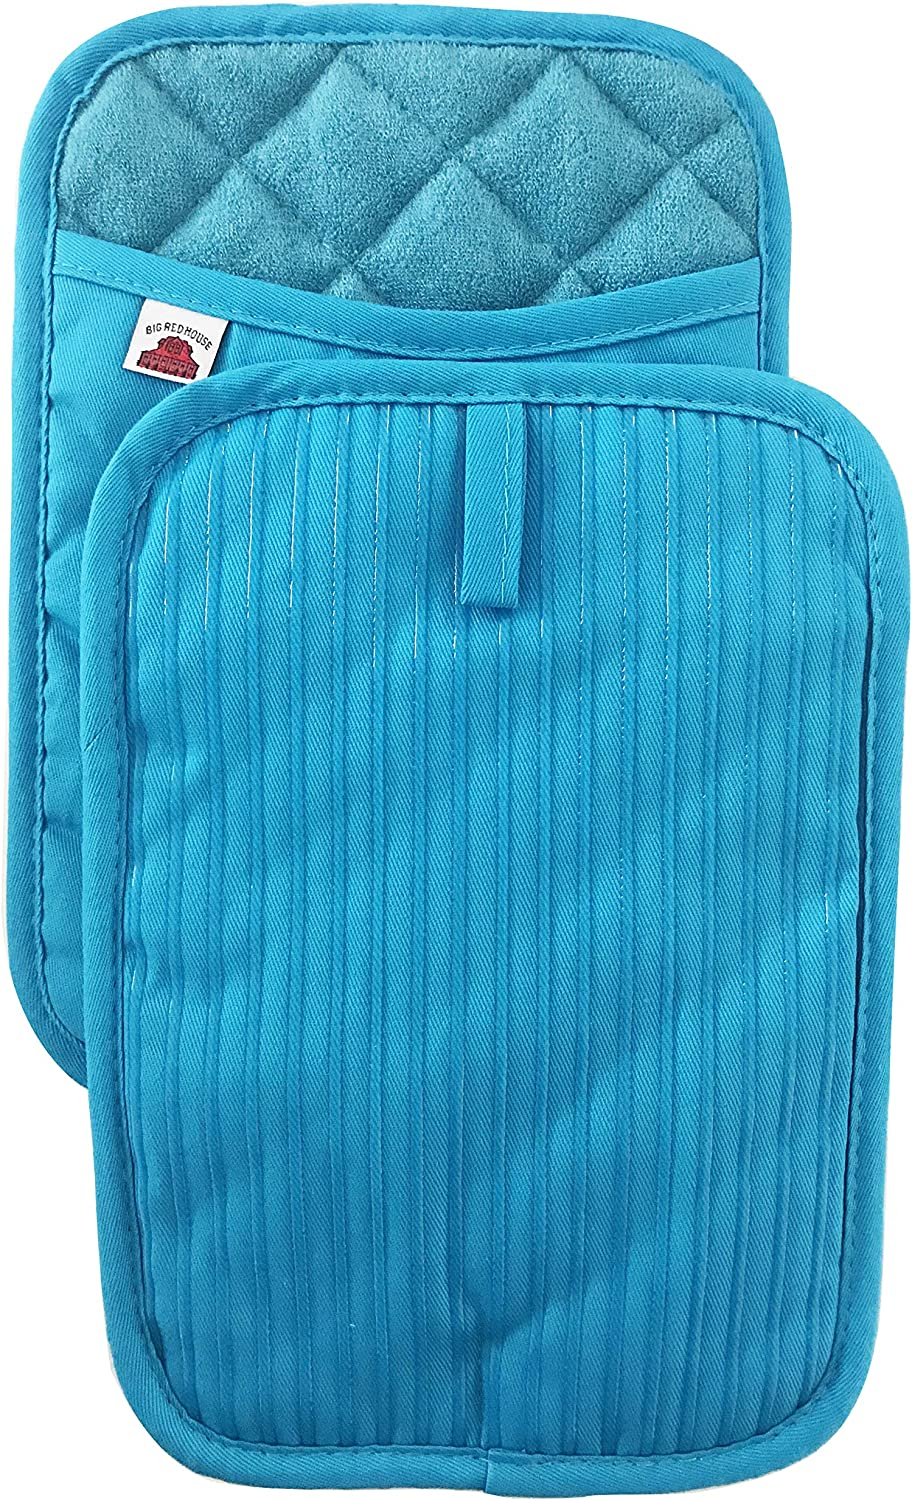 Kitchen Quilted Insulated Hot Pad Pot Holder Oven Mitt Bright Colors Blue Trim Pocket 8 X 8 Chili Pepers